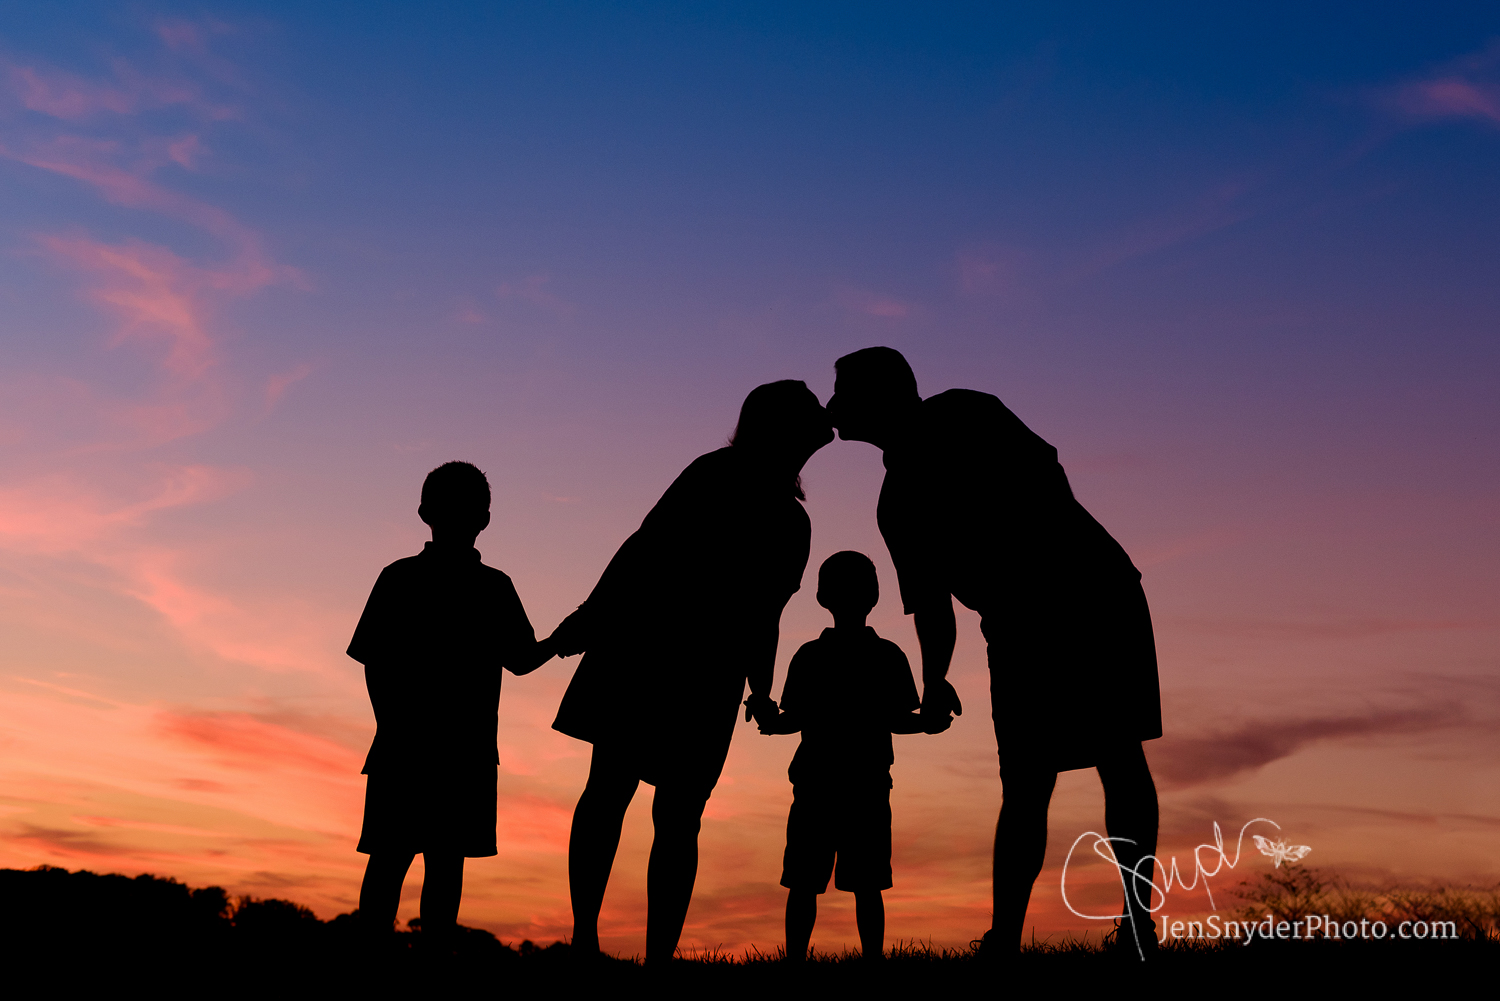 Baltimore, MD family portrait in silhouette against a summer sunset sky by professional photographer Jen Snyder http://www.jensnyderphoto.com